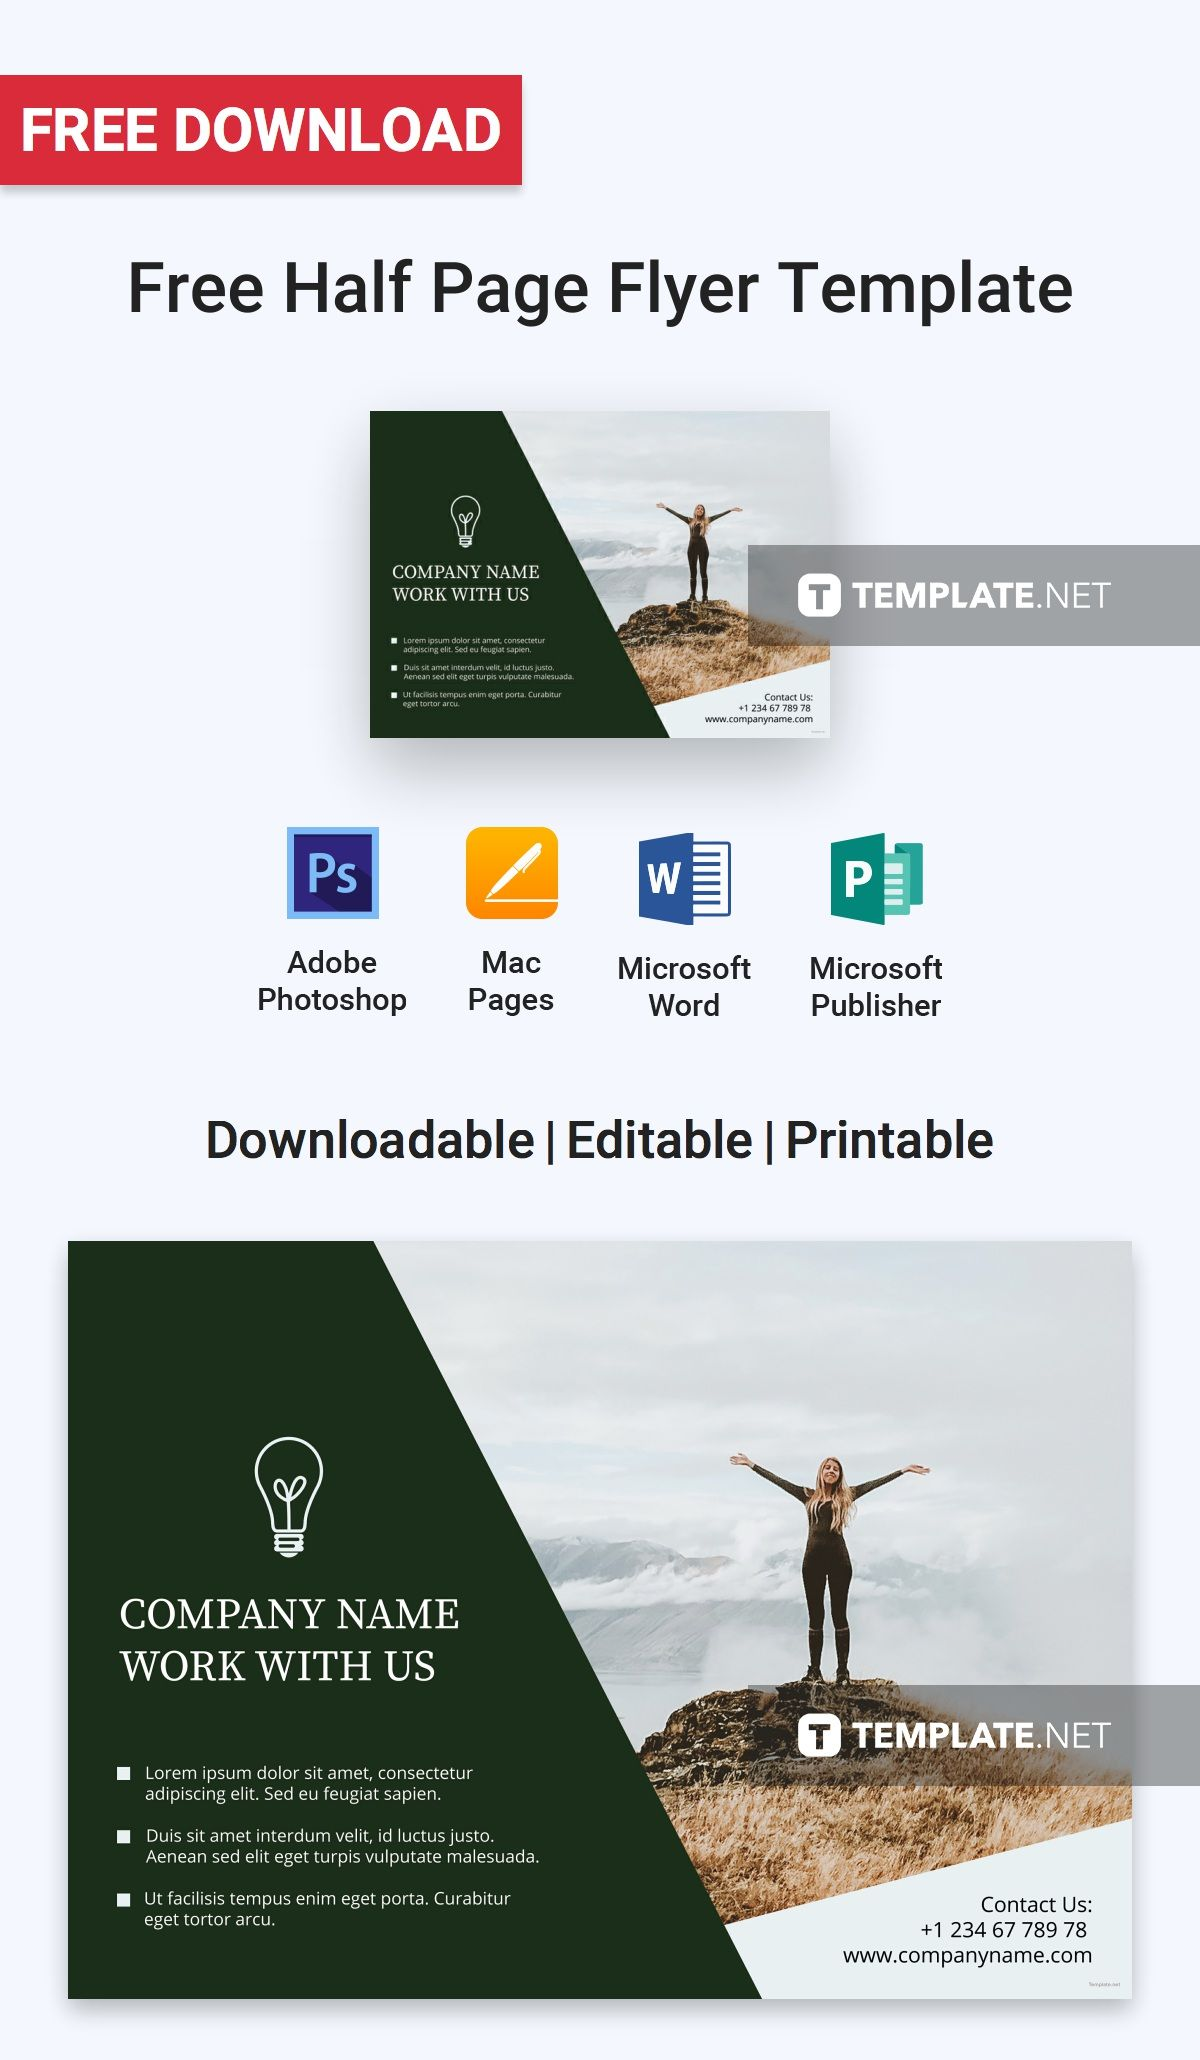 free half page flyer flyer templates designs 2019 pinterest